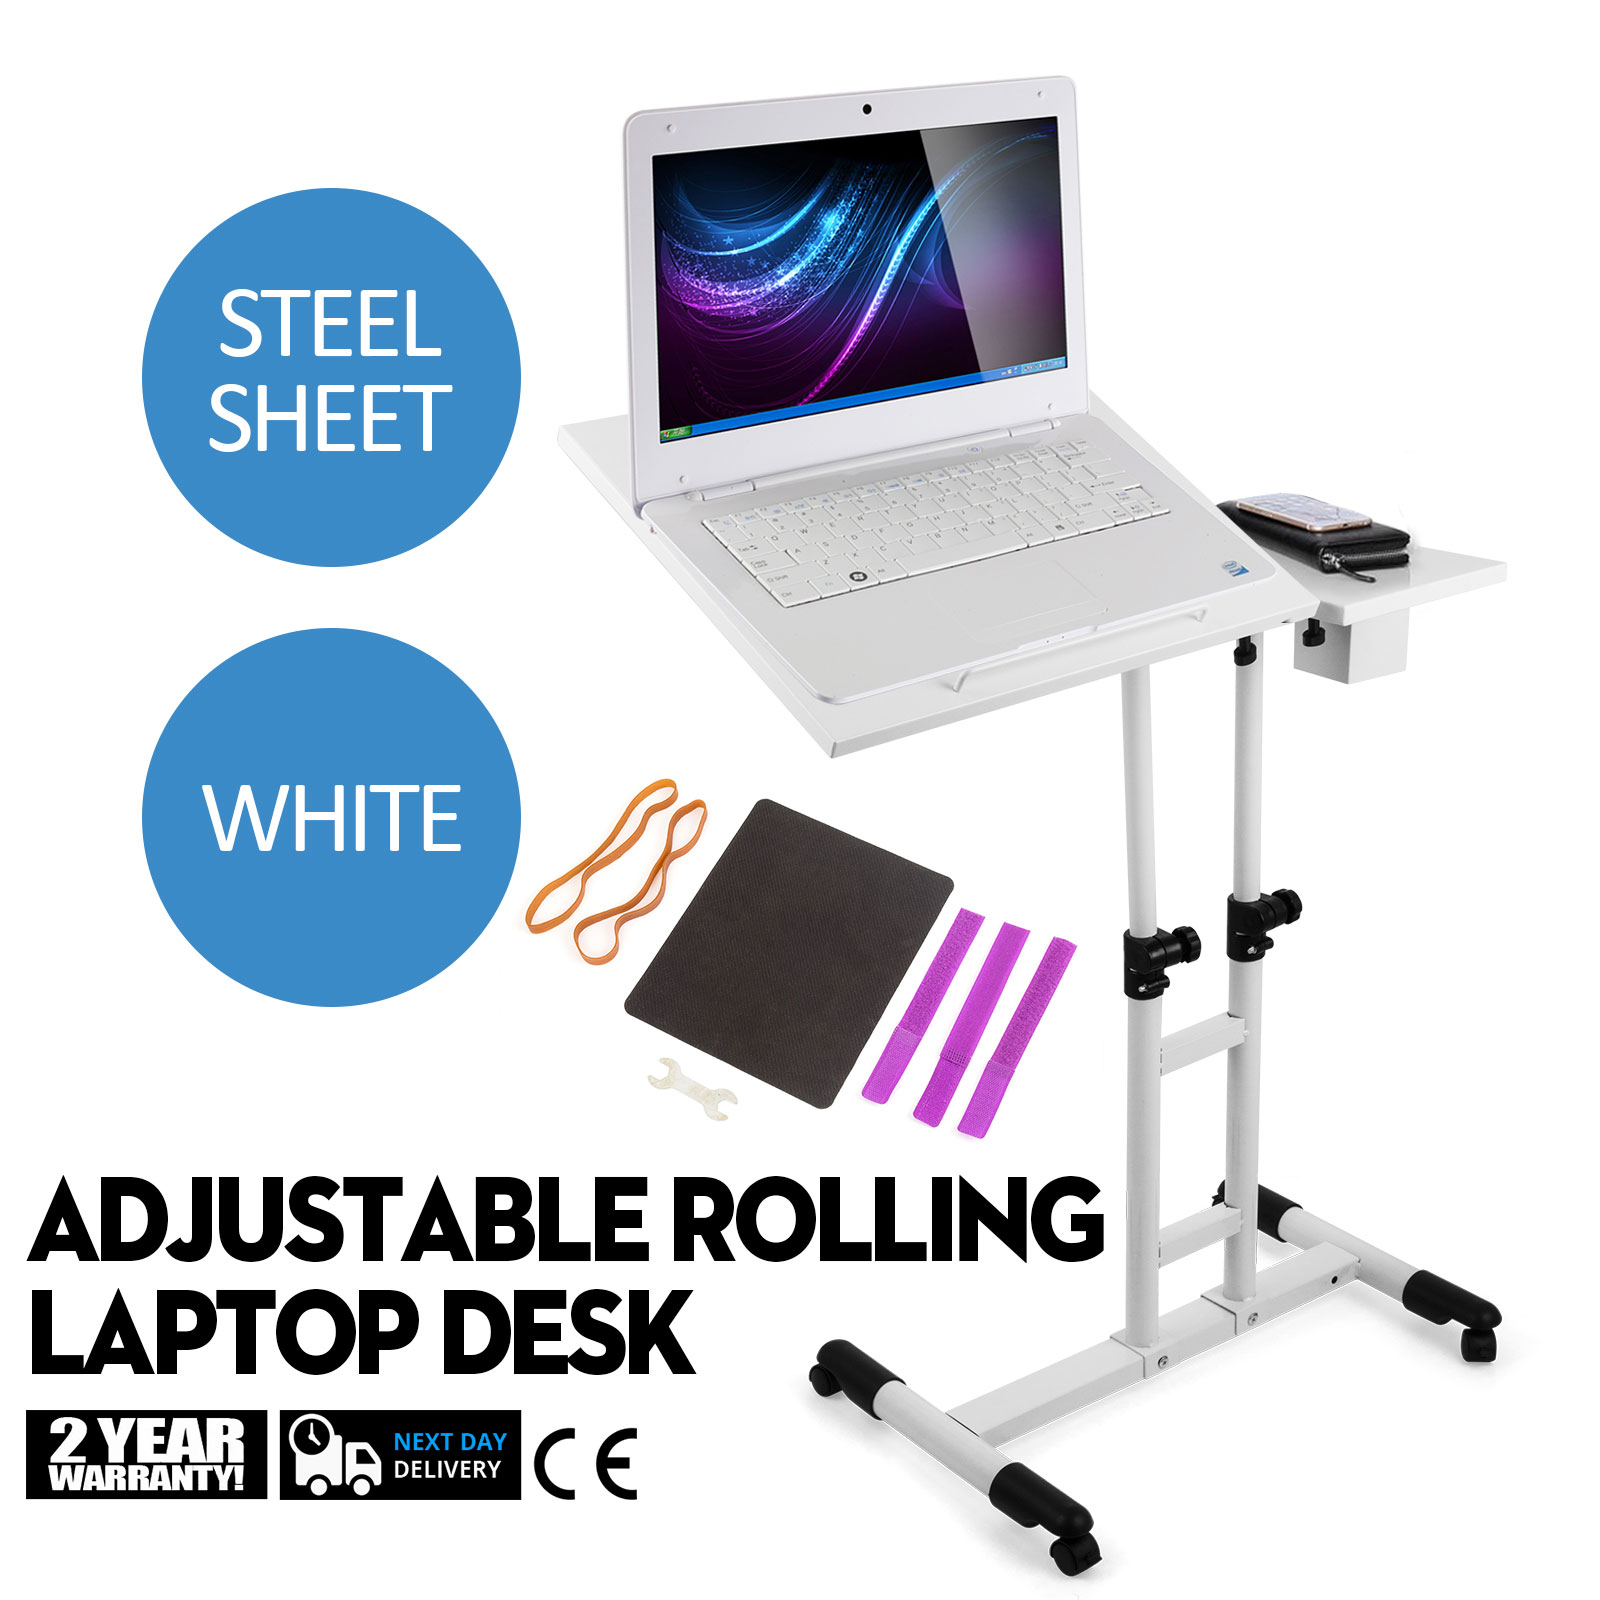 Adjustable Height Rolling Laptop Desk Table Anti-slide Shelves Tattooing Cart